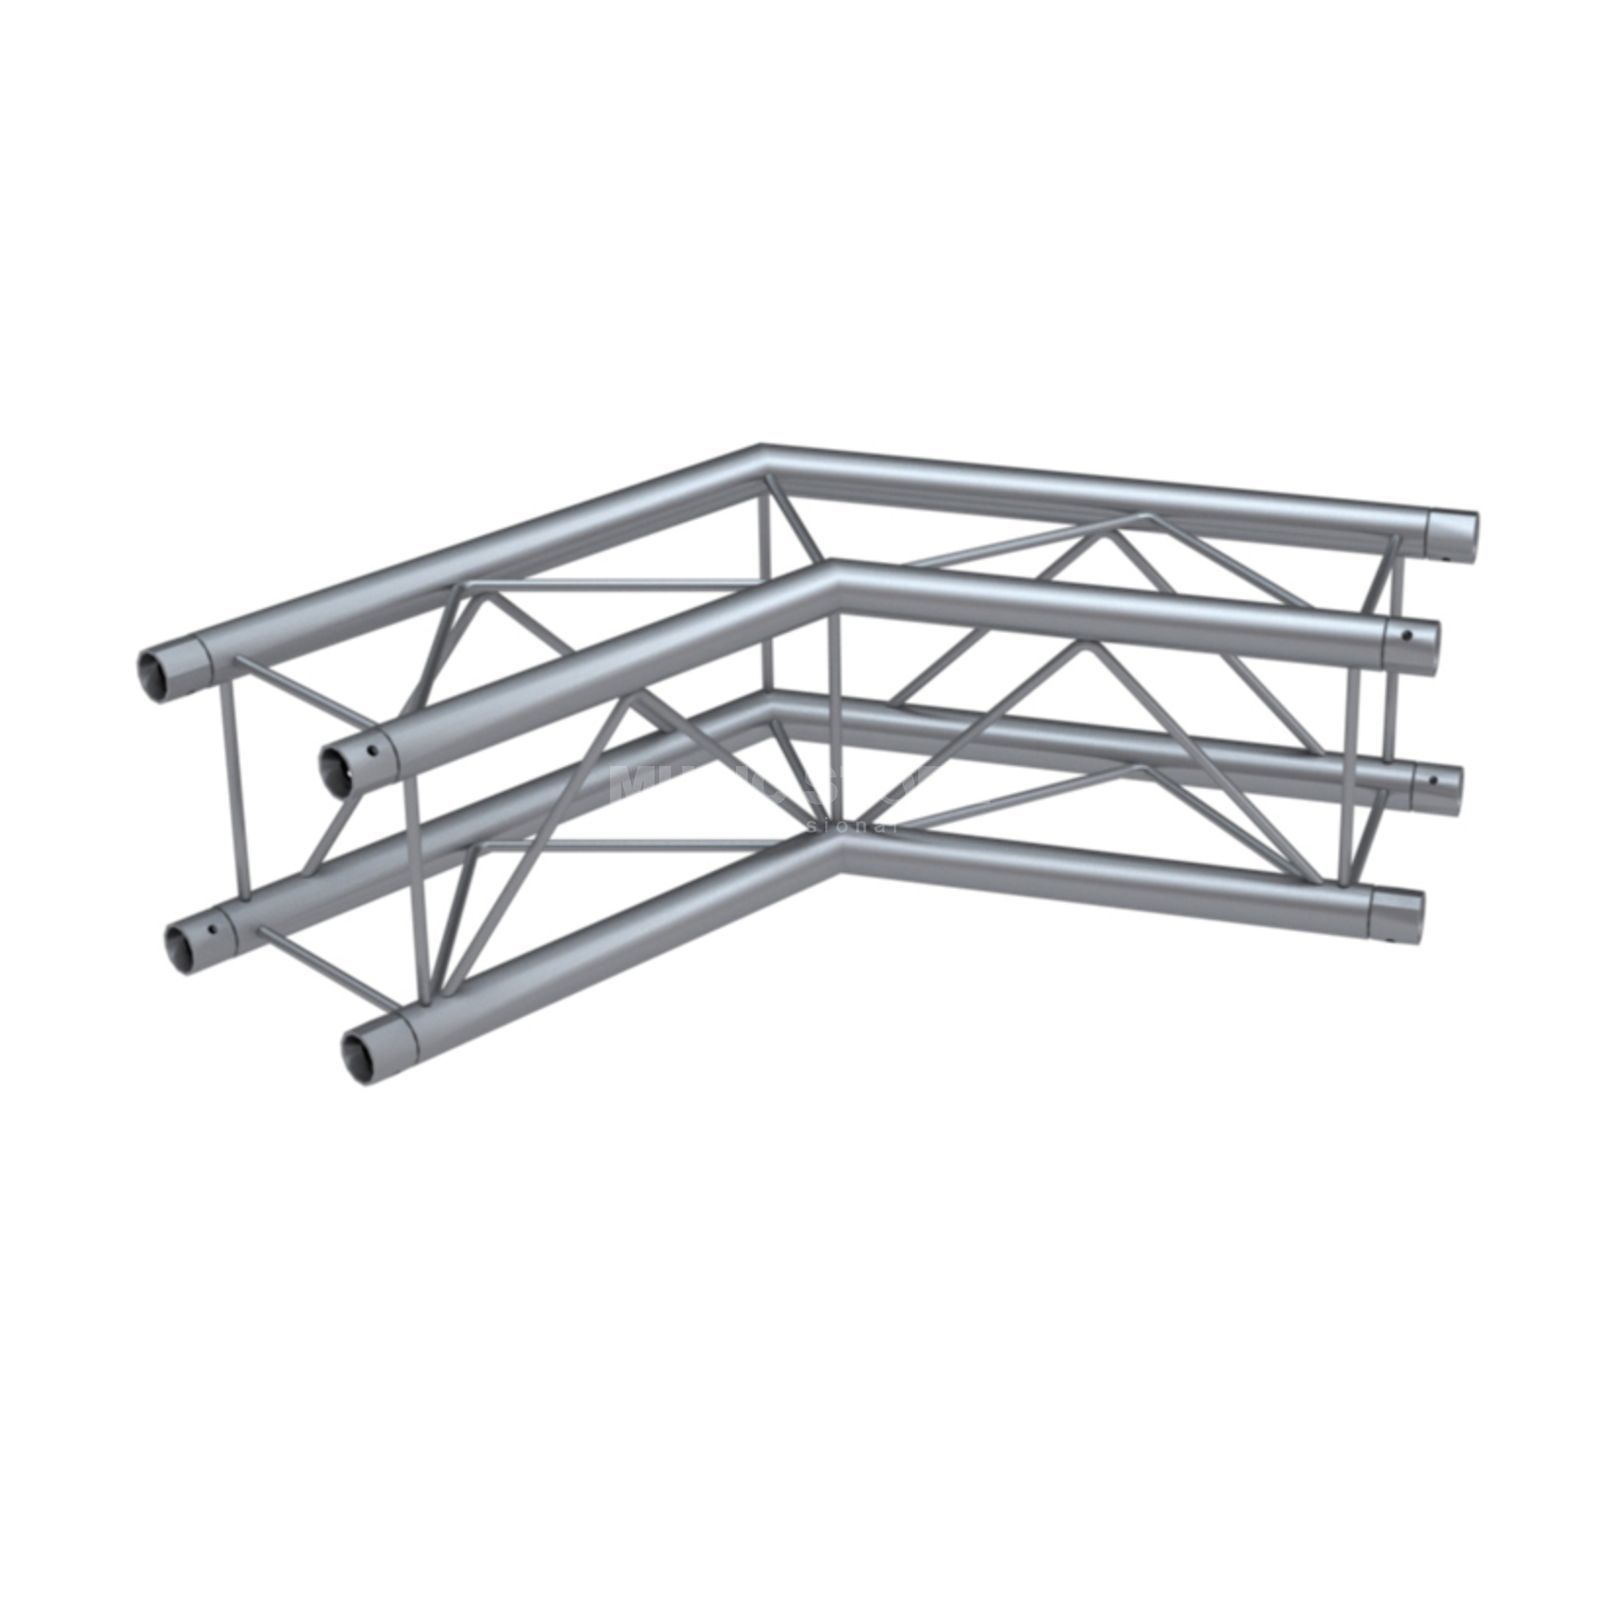 Global Truss F24, 2-Way Corner, C22, 120°  Produktbillede